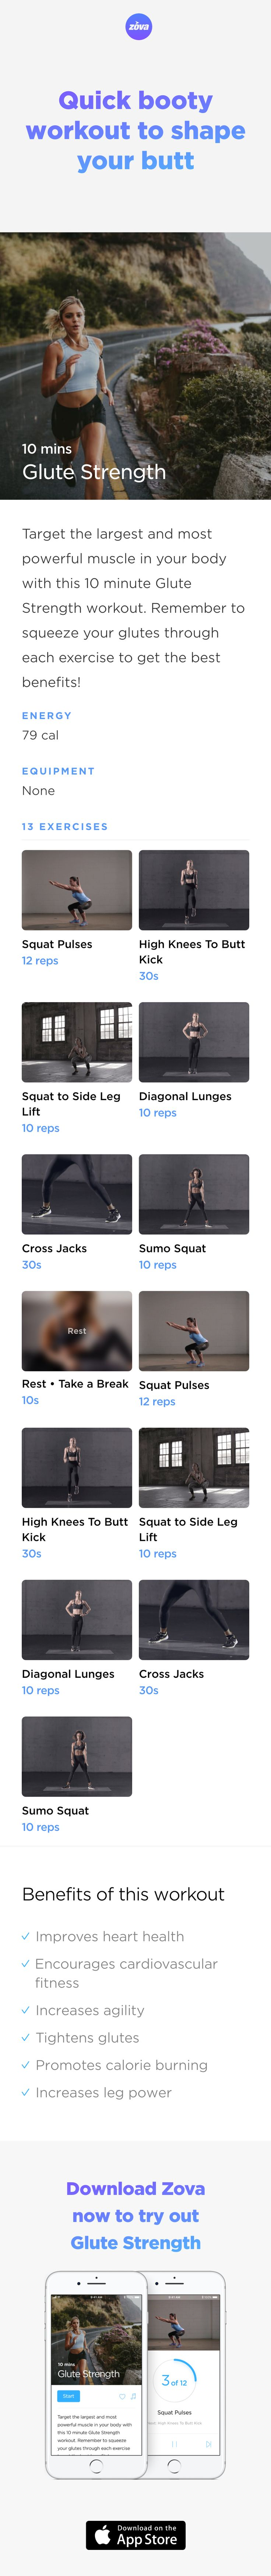 If you don't have much time but you want to firm and shape your booty, this quick and high intensity glute workout is you. You'll start to define your glute and leg muscles quickly in order to get a more athletic looking butt in under 10 minutes. Plus, you'll strengthen your pelvis too! #booty #butt #HIIT #workout #fitness #squat